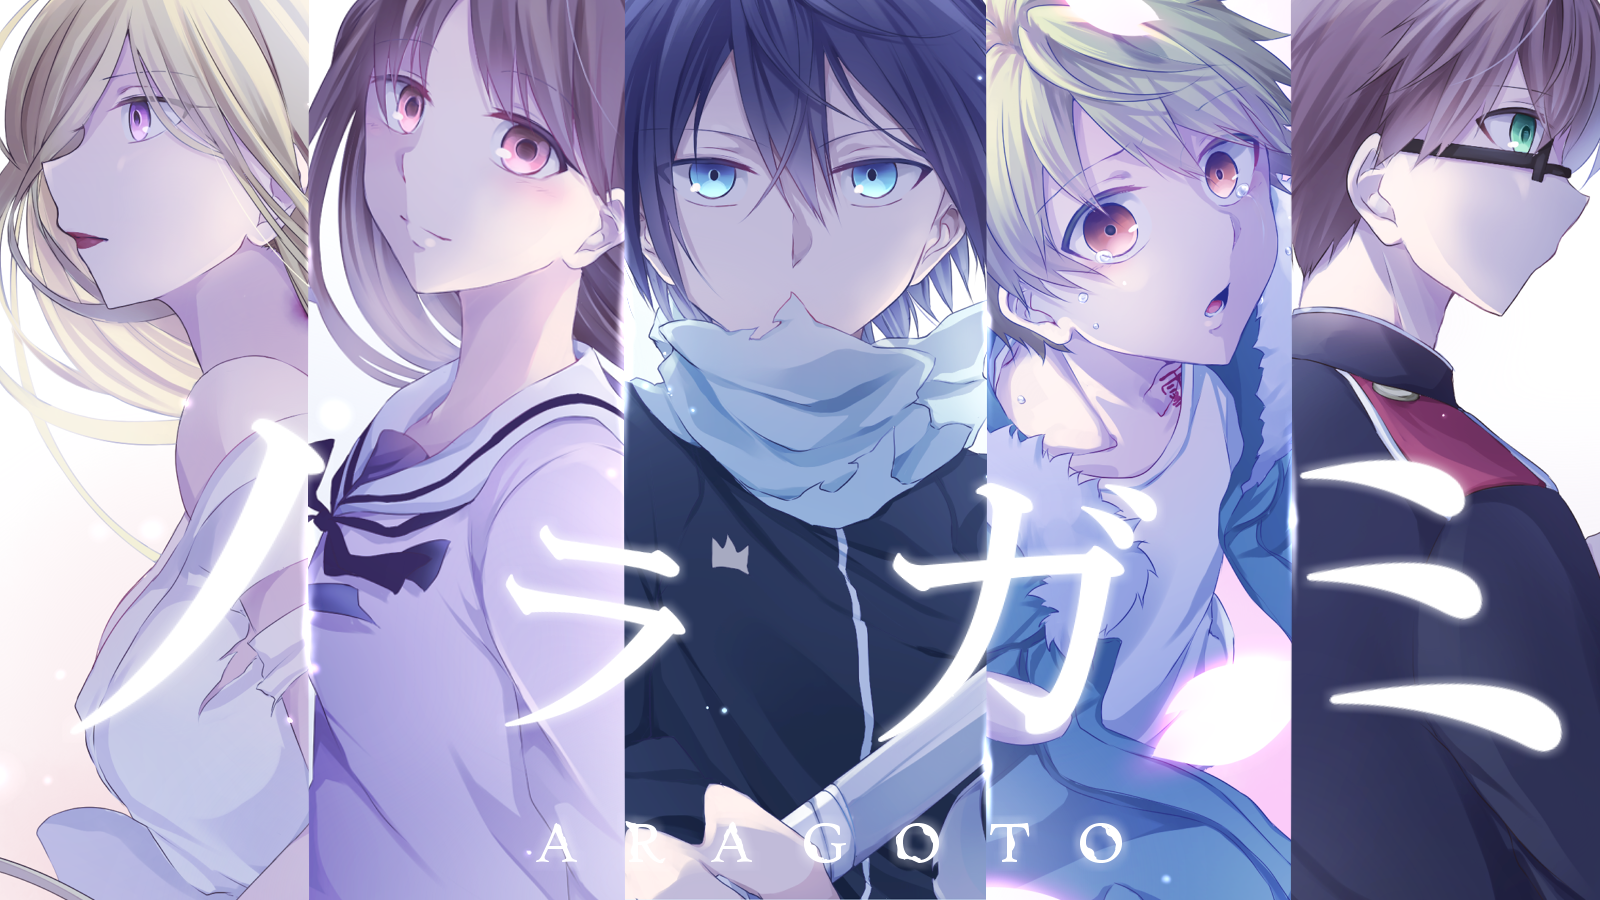 Download 56 Koleksi Wallpaper Anime Noragami Hd HD Terbaik